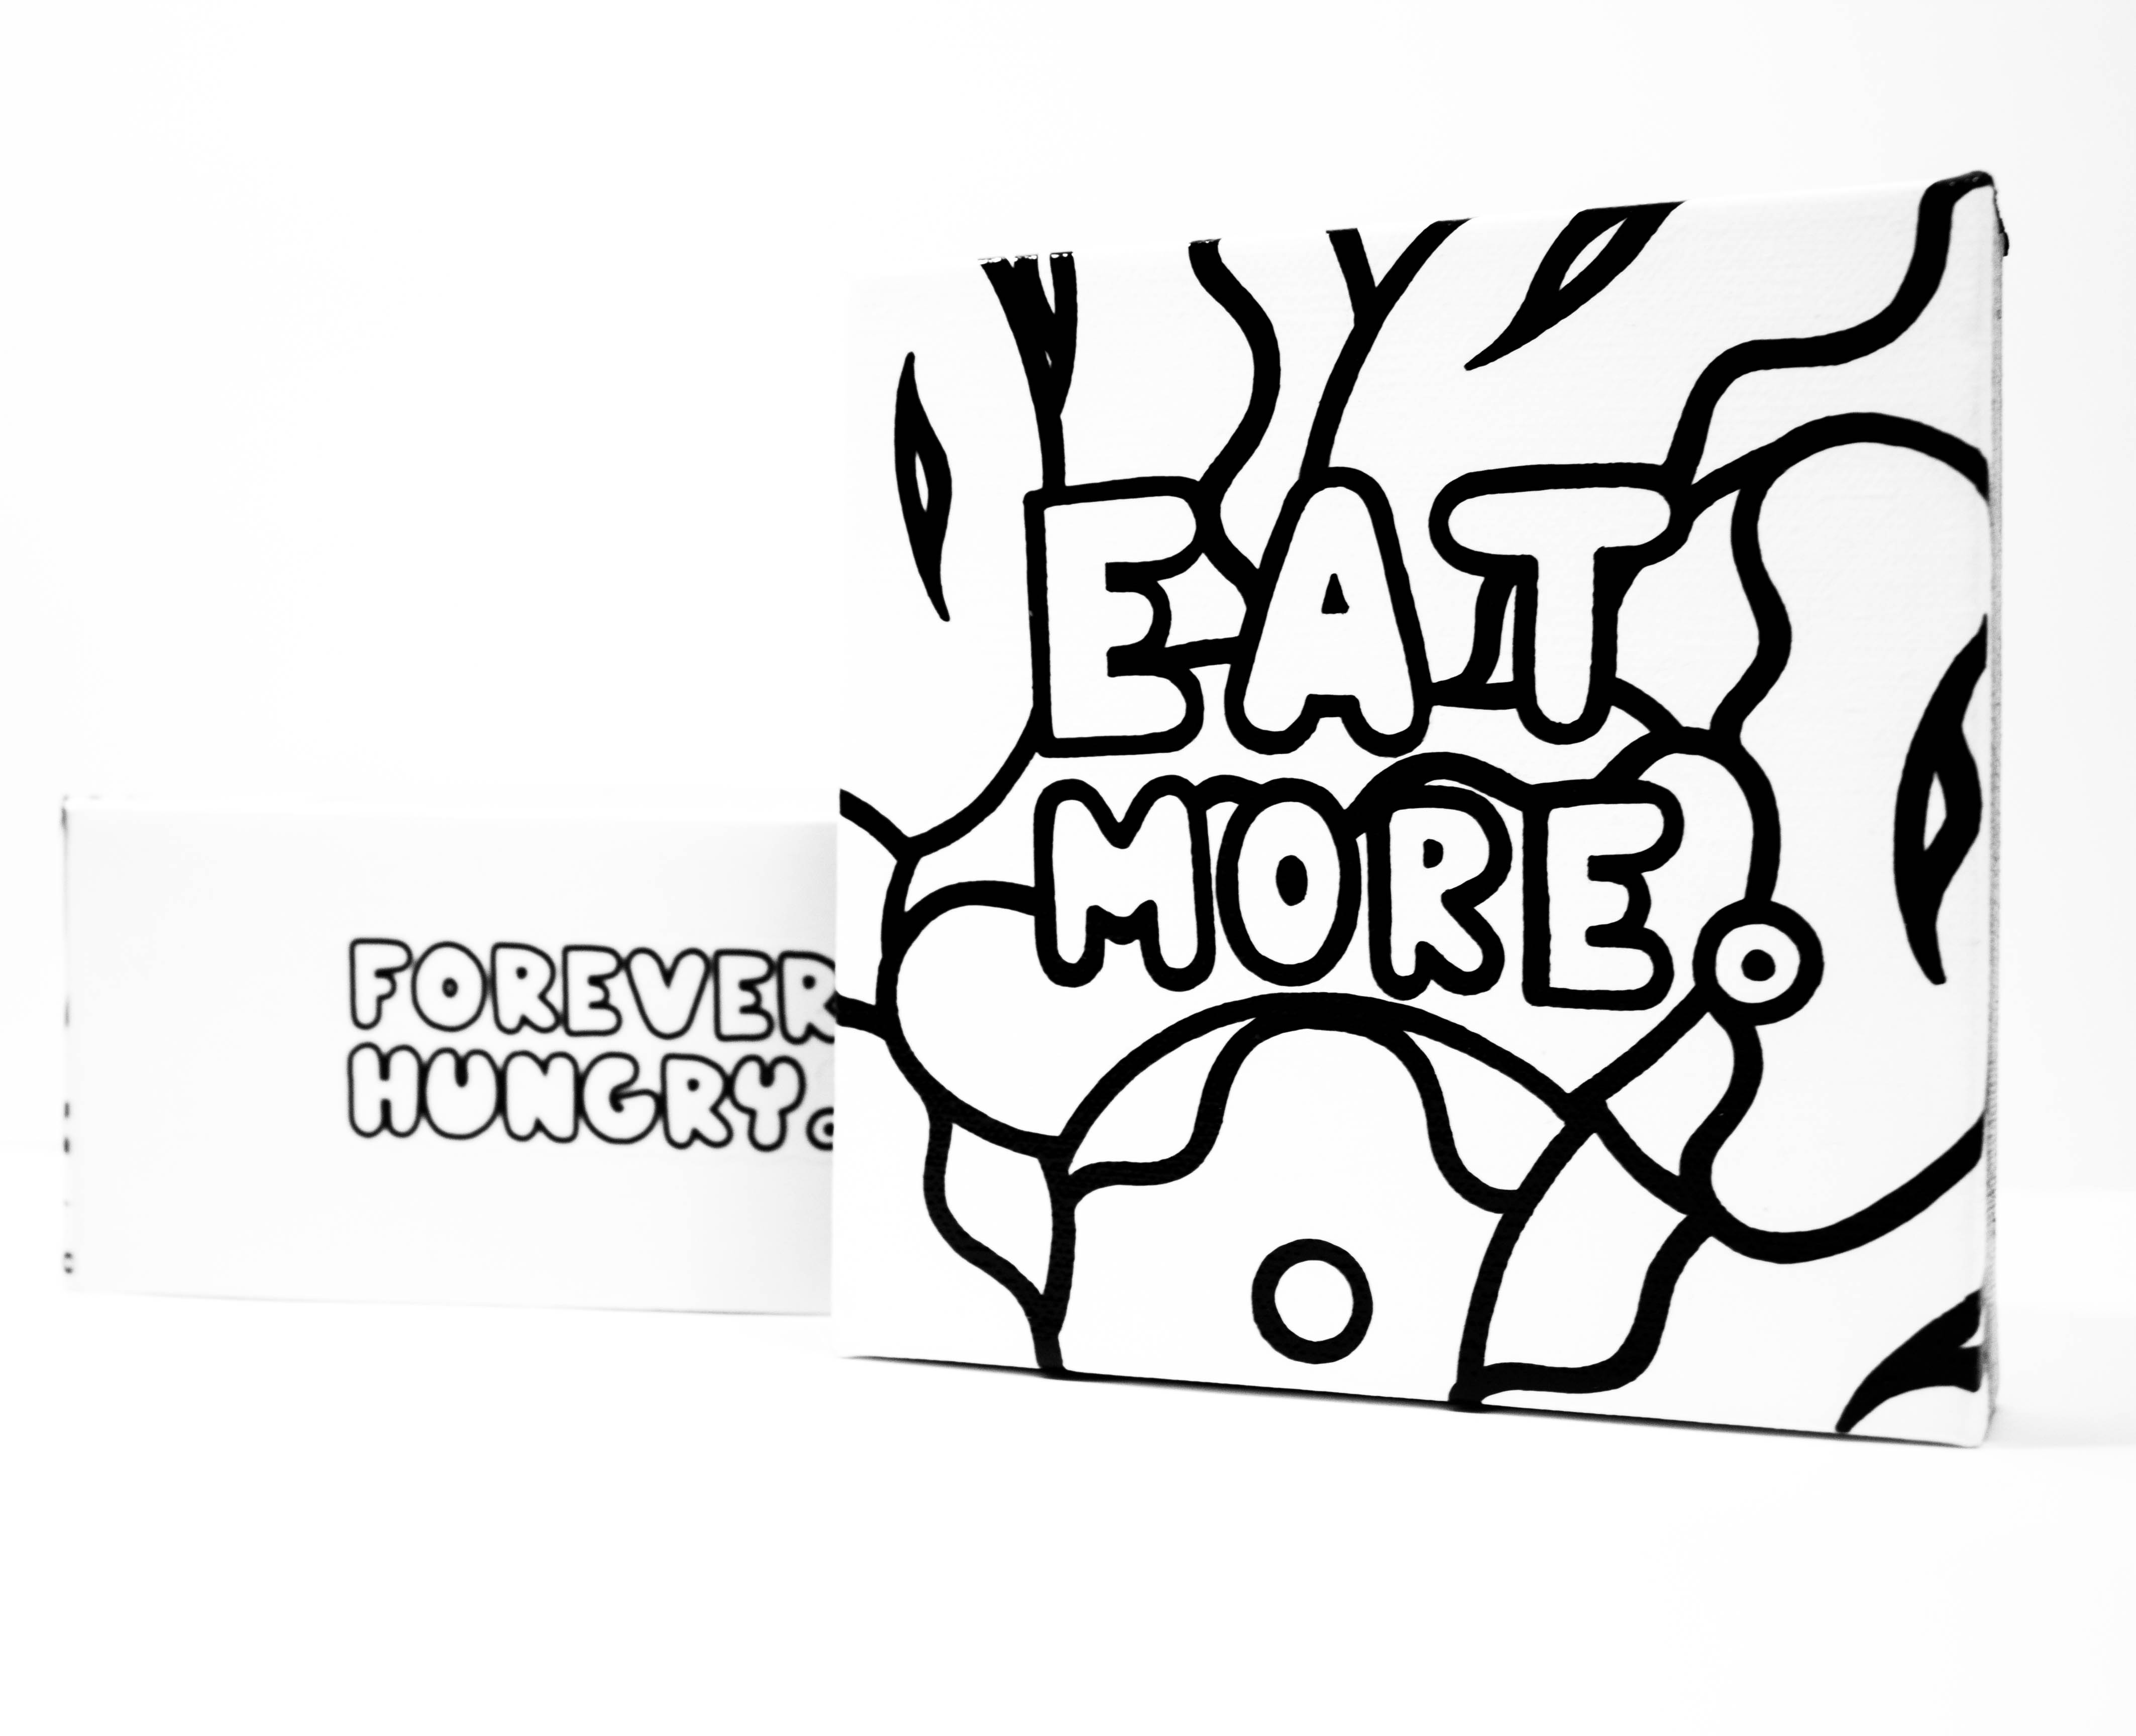 EAT MORE